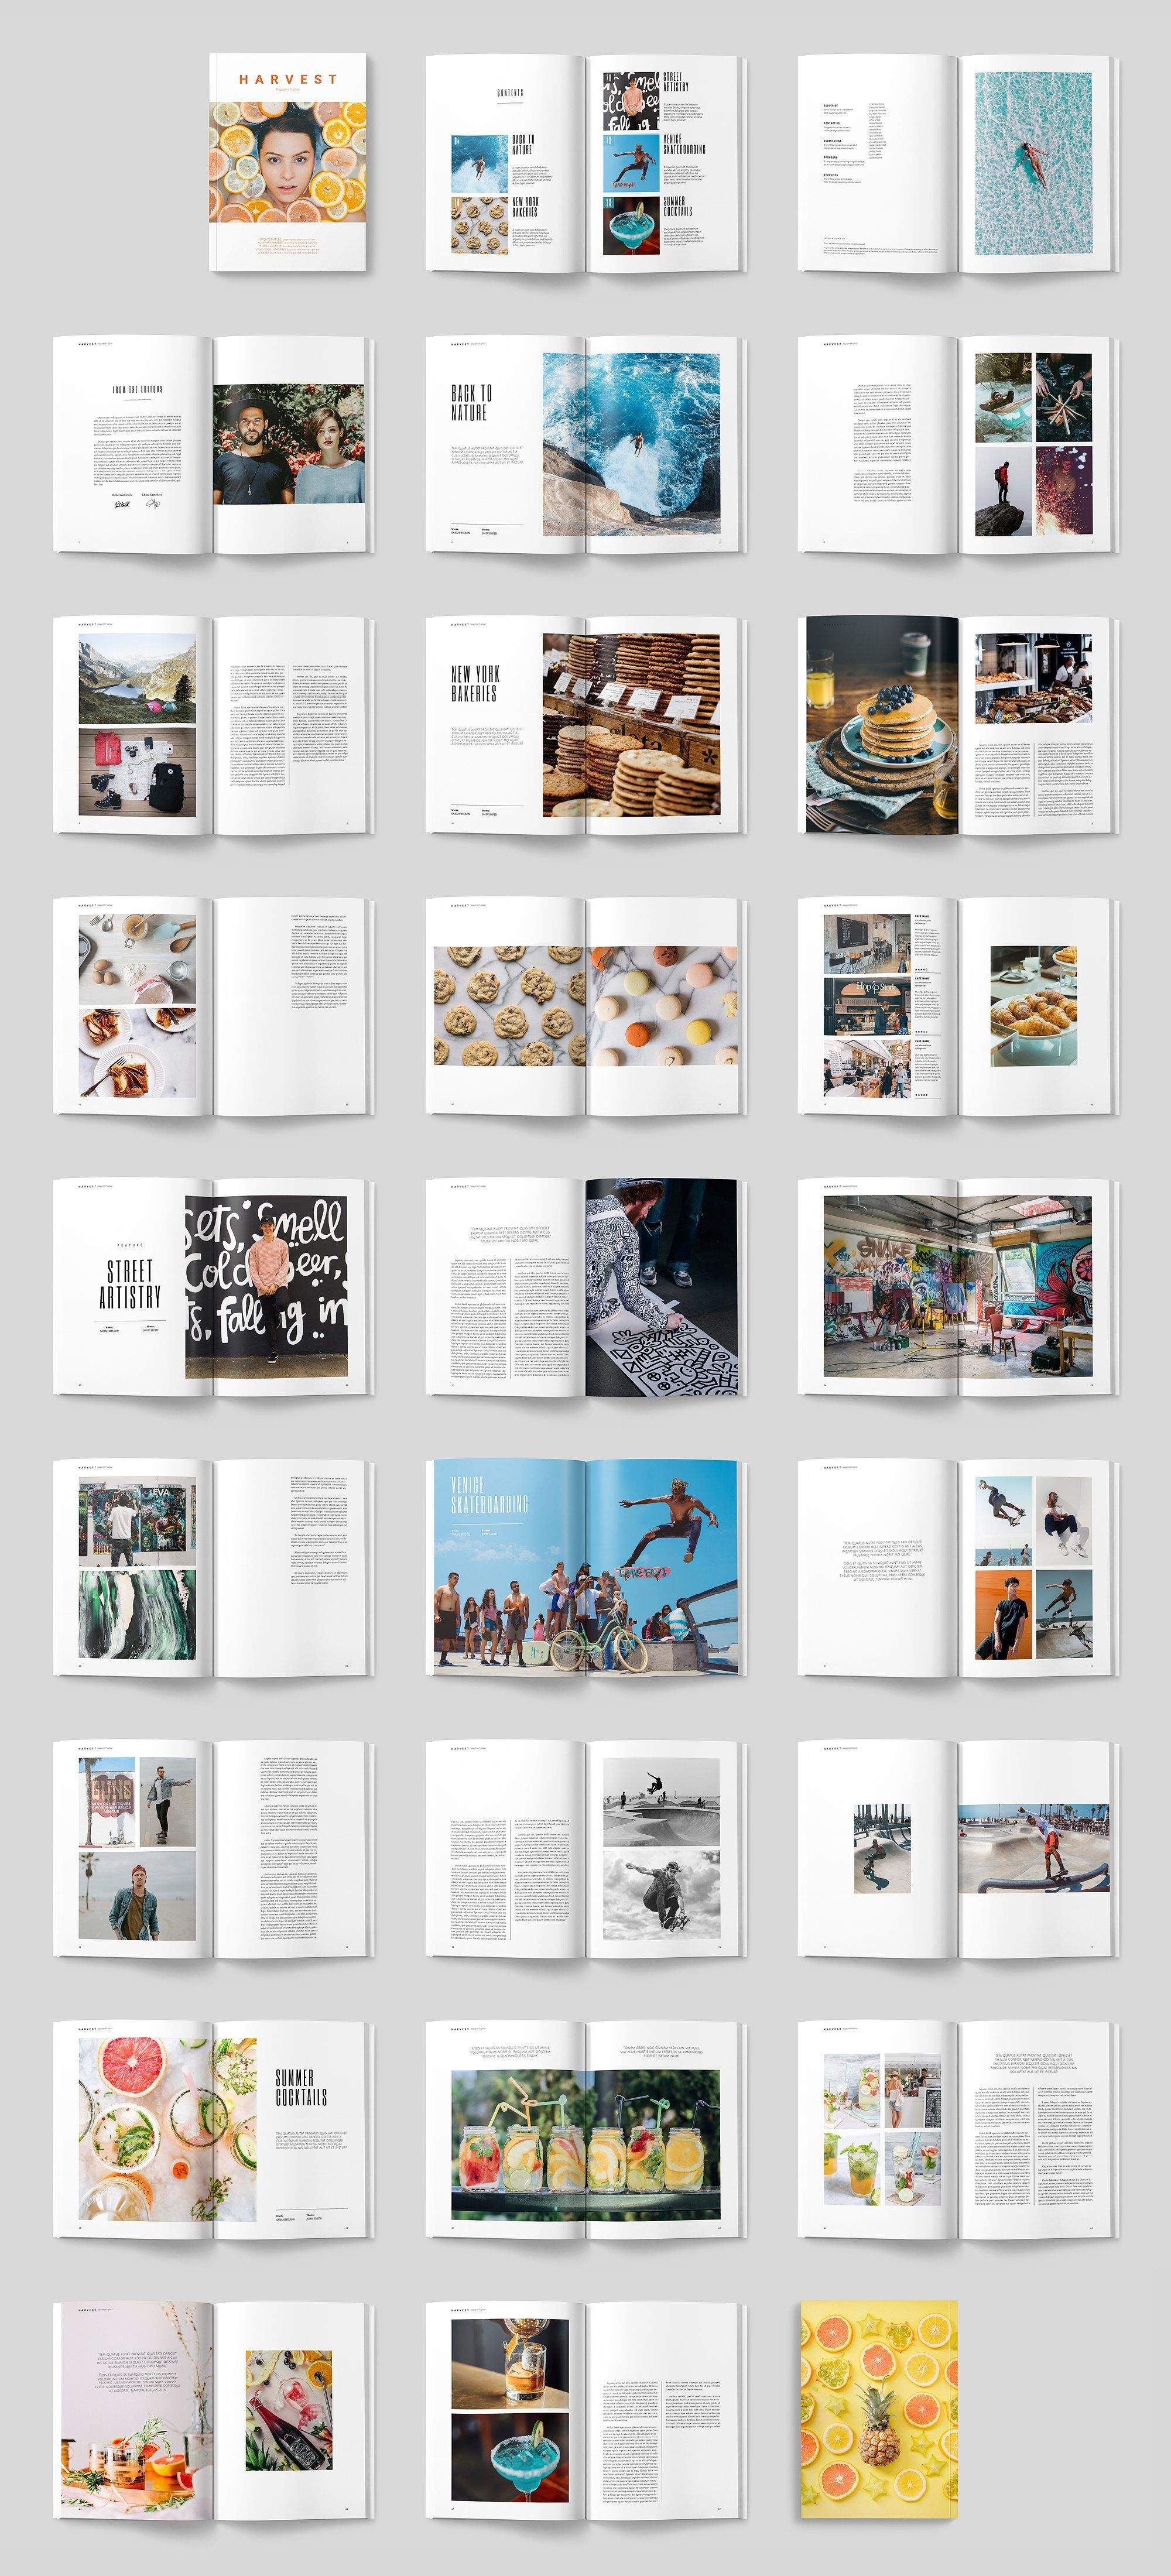 004 Shocking Magazine Template For Microsoft Word Concept  Layout Design DownloadFull